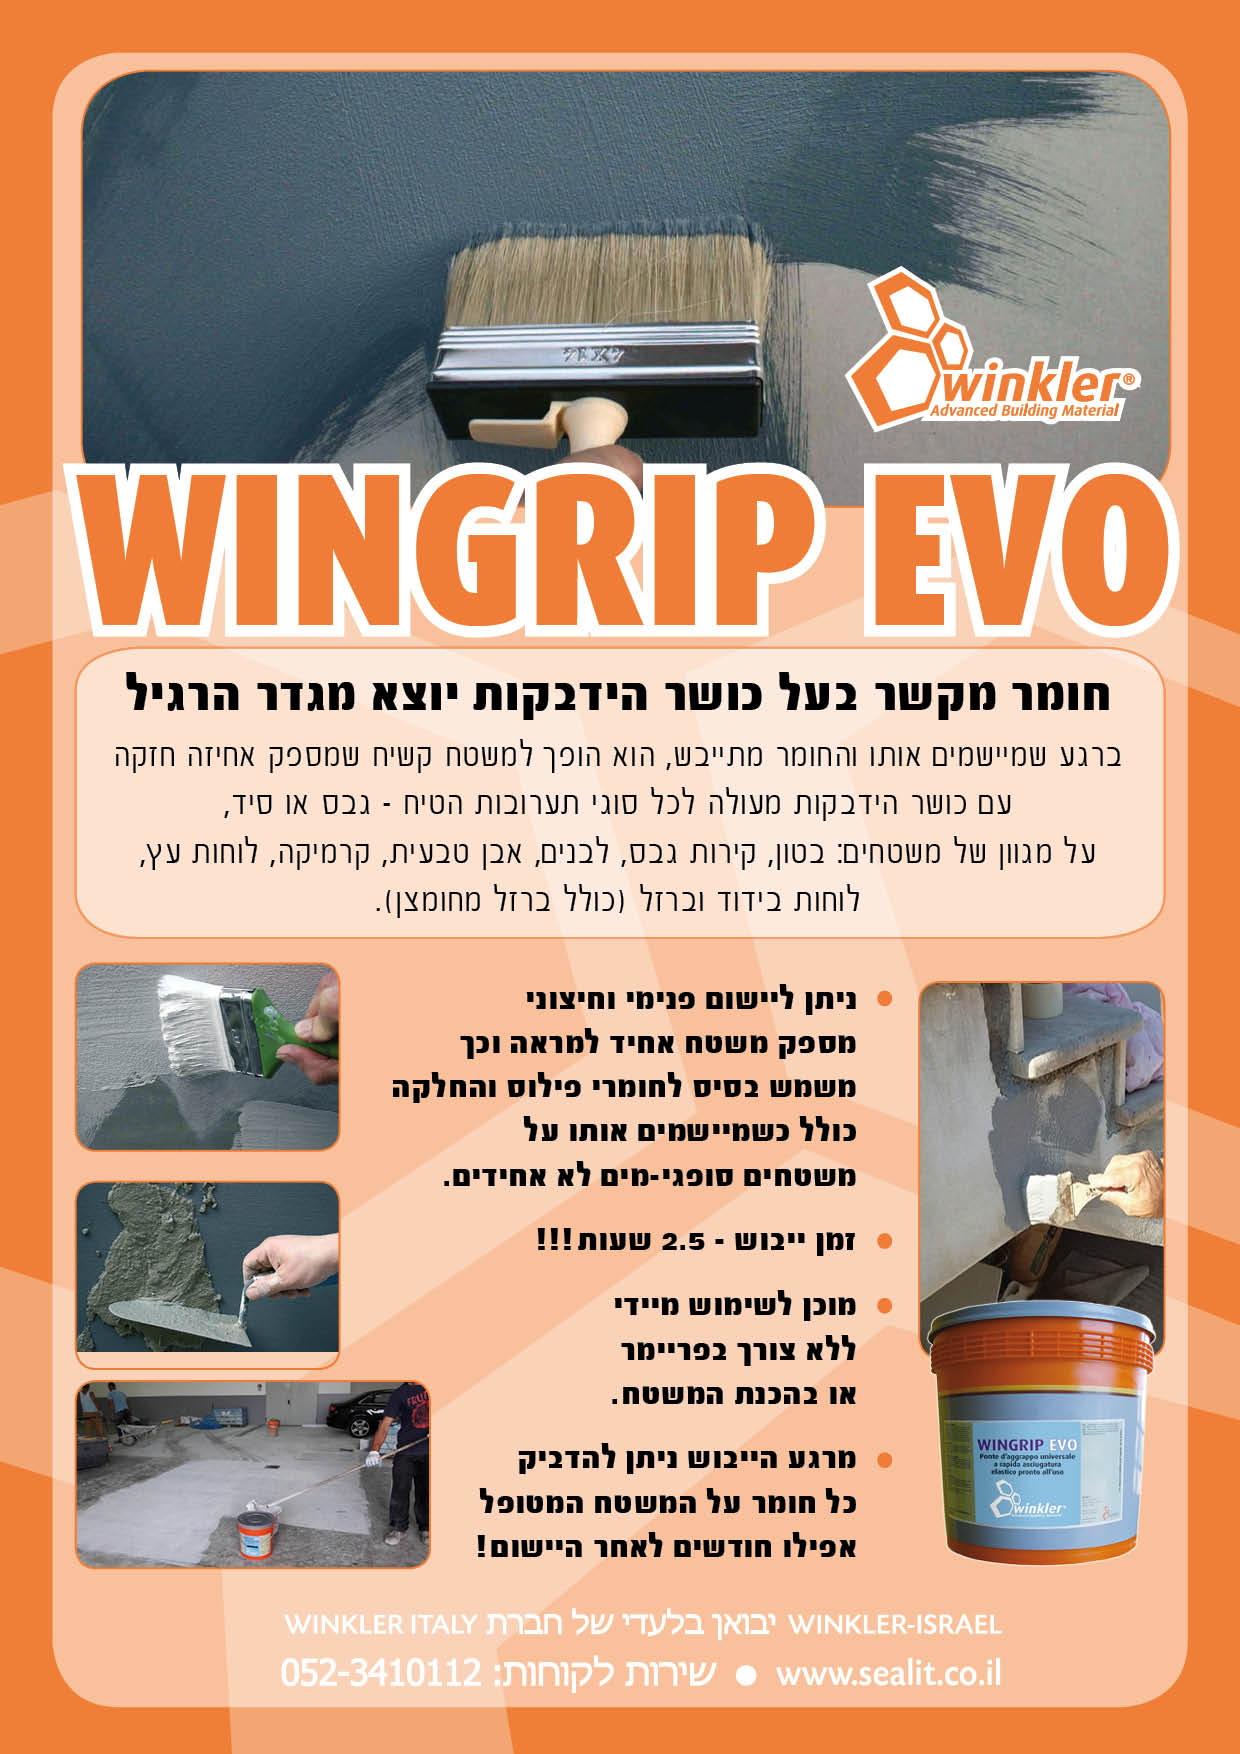 flyer-wingrip evo